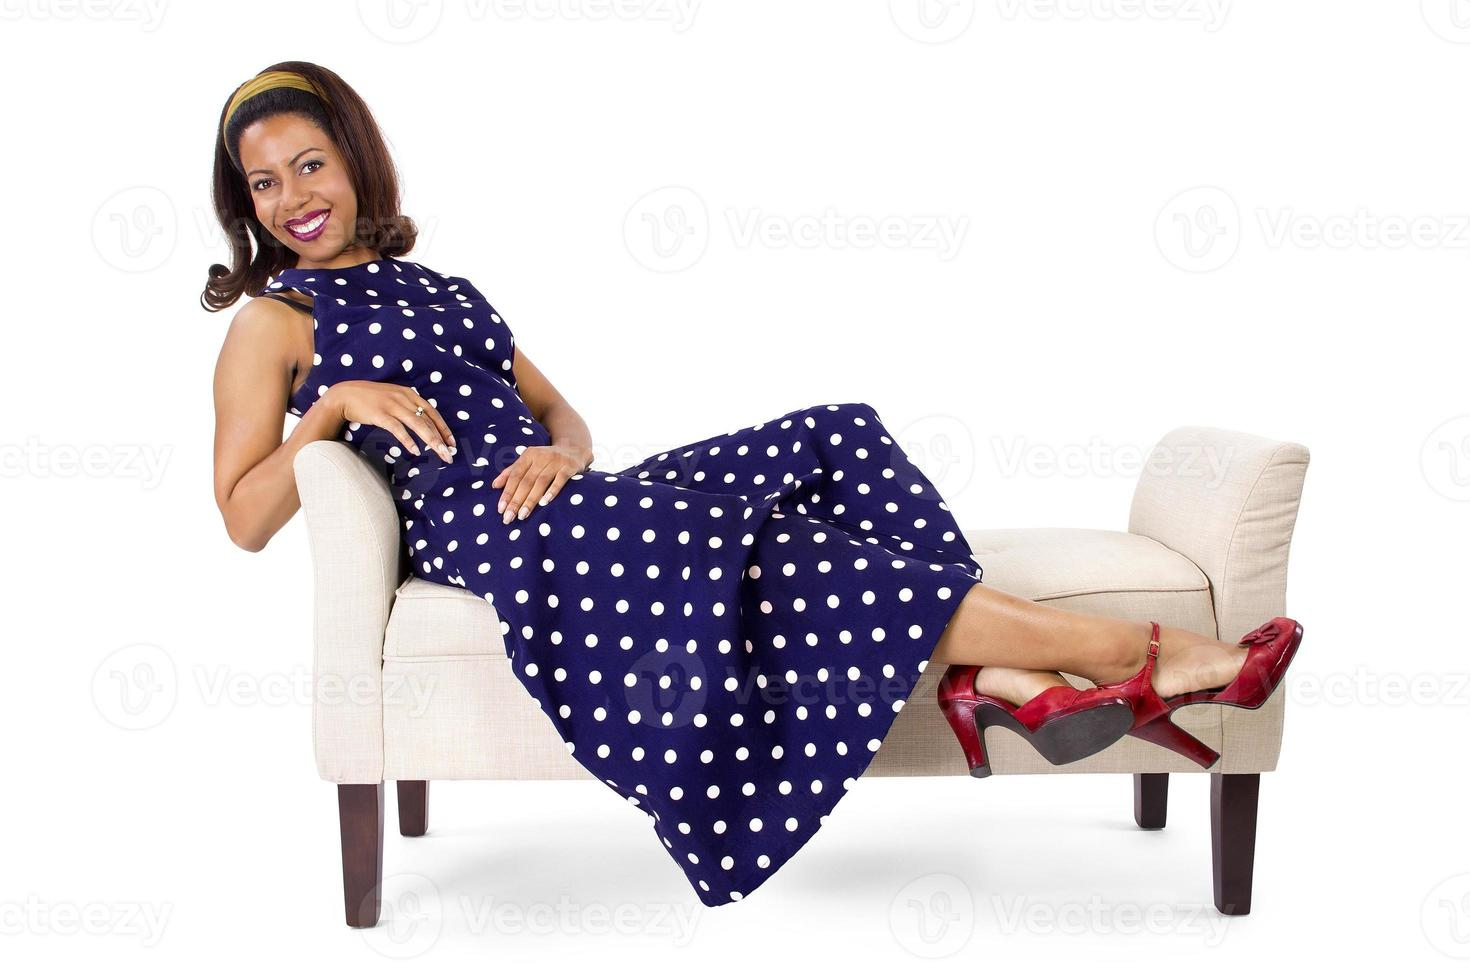 Vintage Style Woman Laying on a Chaise photo